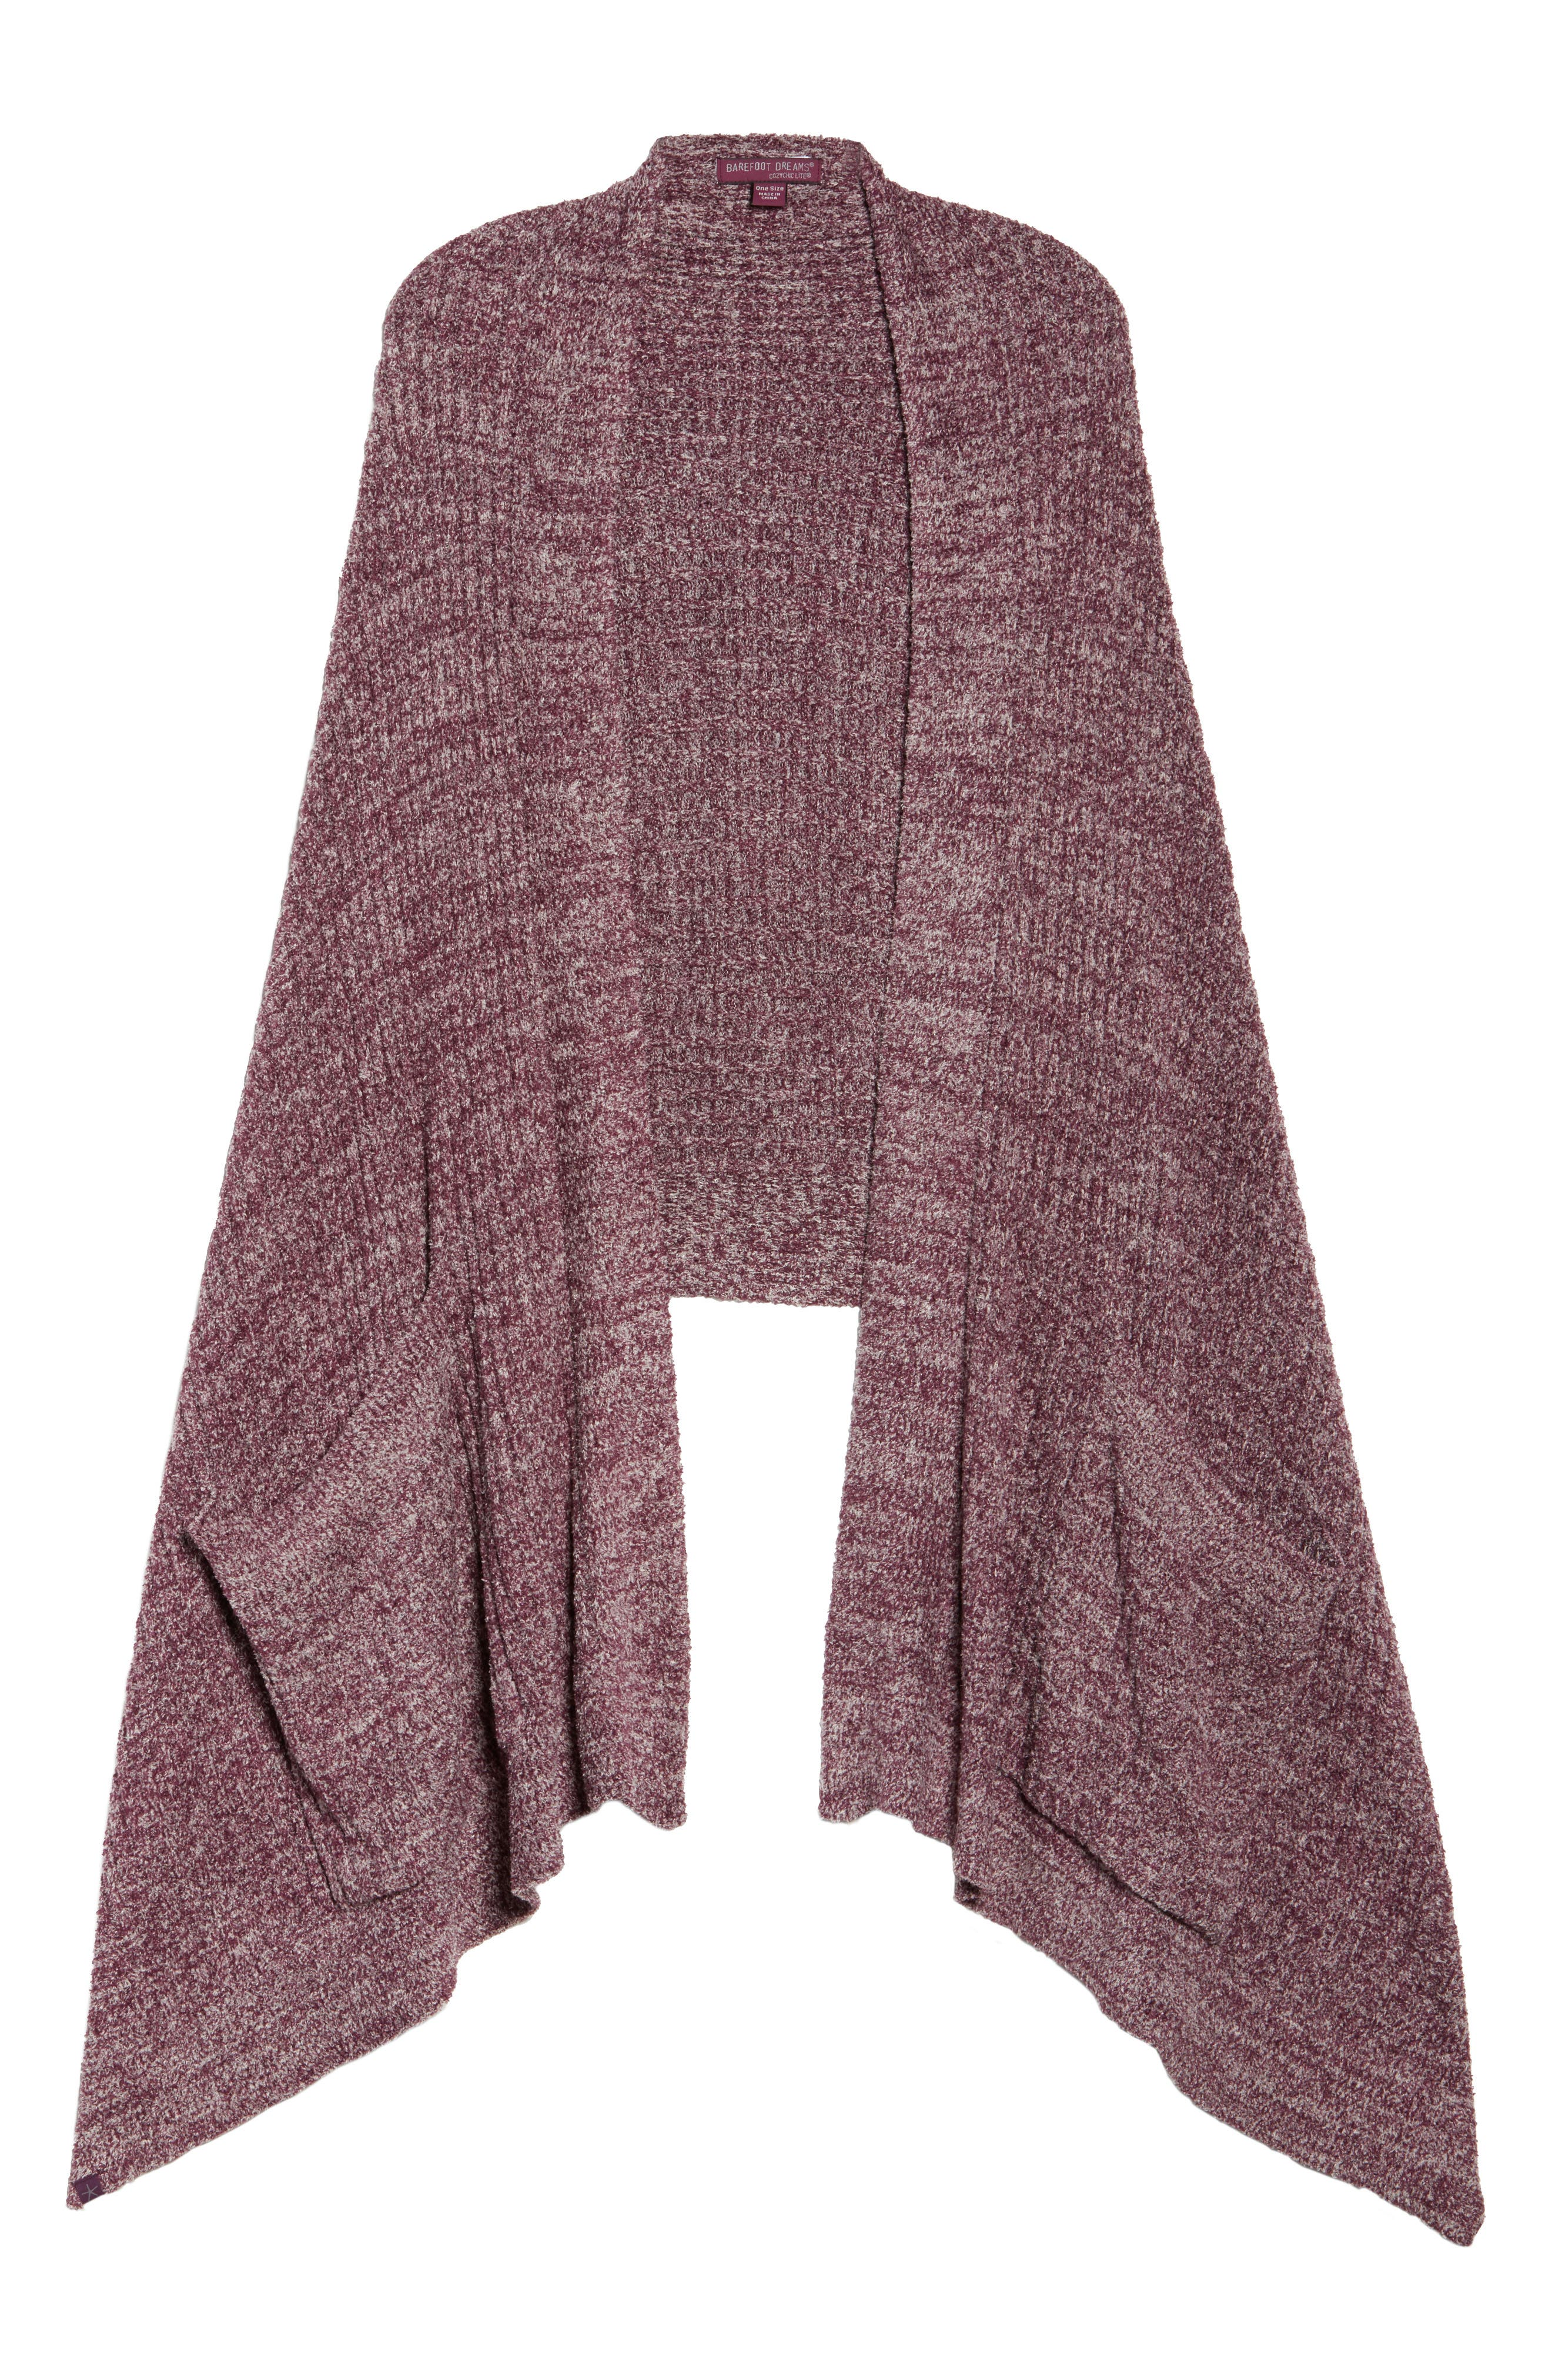 BAREFOOT DREAMS<SUP>®</SUP>, Cozychic Lite<sup>®</sup> Travel Shawl, Alternate thumbnail 6, color, 930